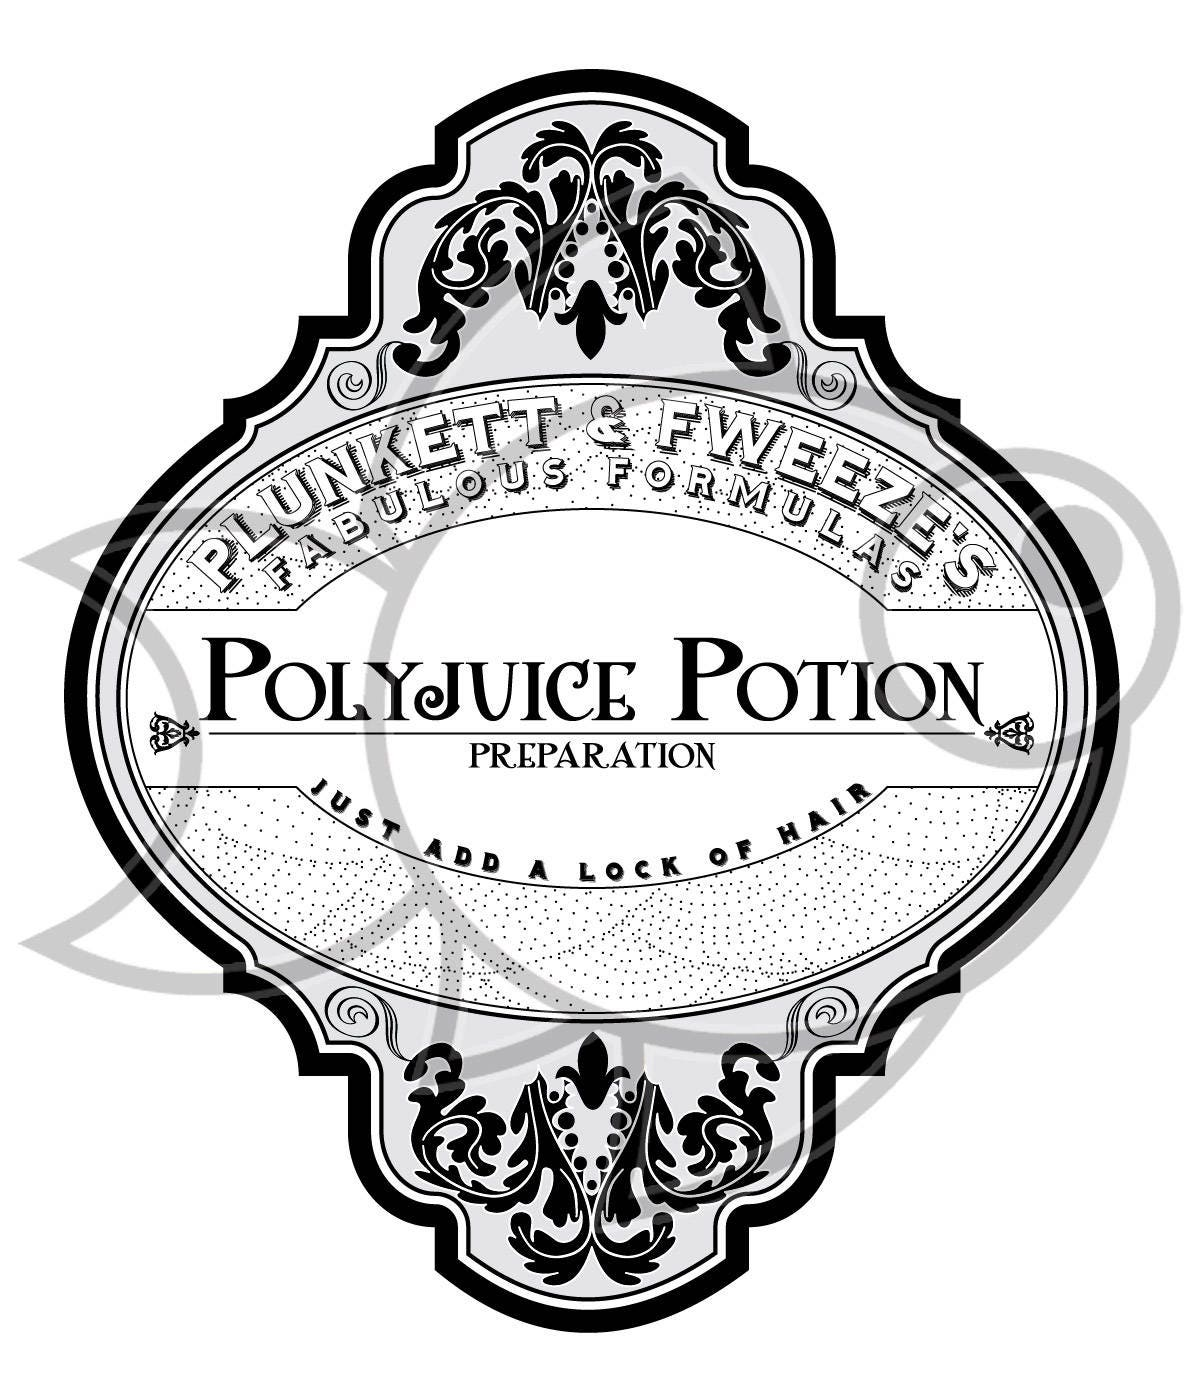 Polyjuice Potion Labels from moderngoldfish on Etsy Studio